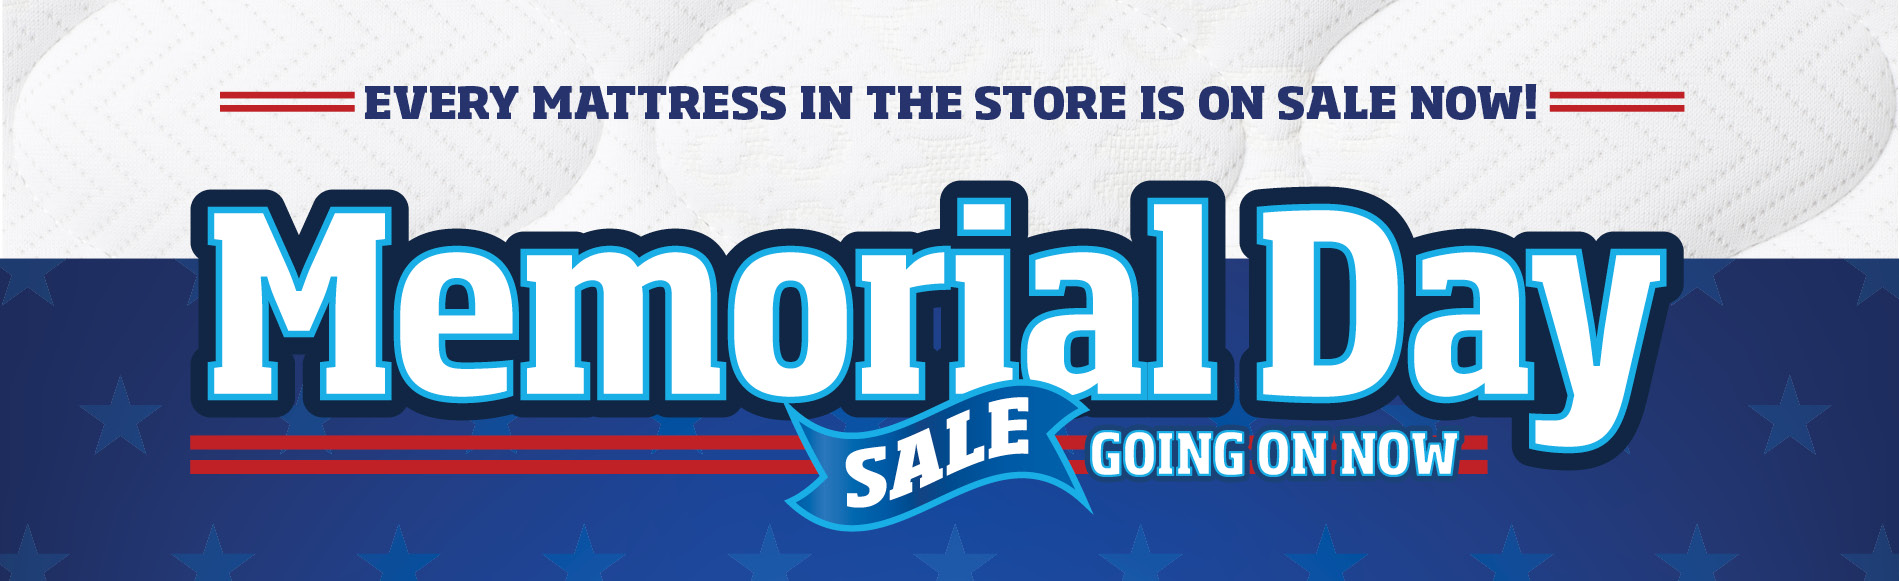 Memorial Day Every Mattress is on Sale